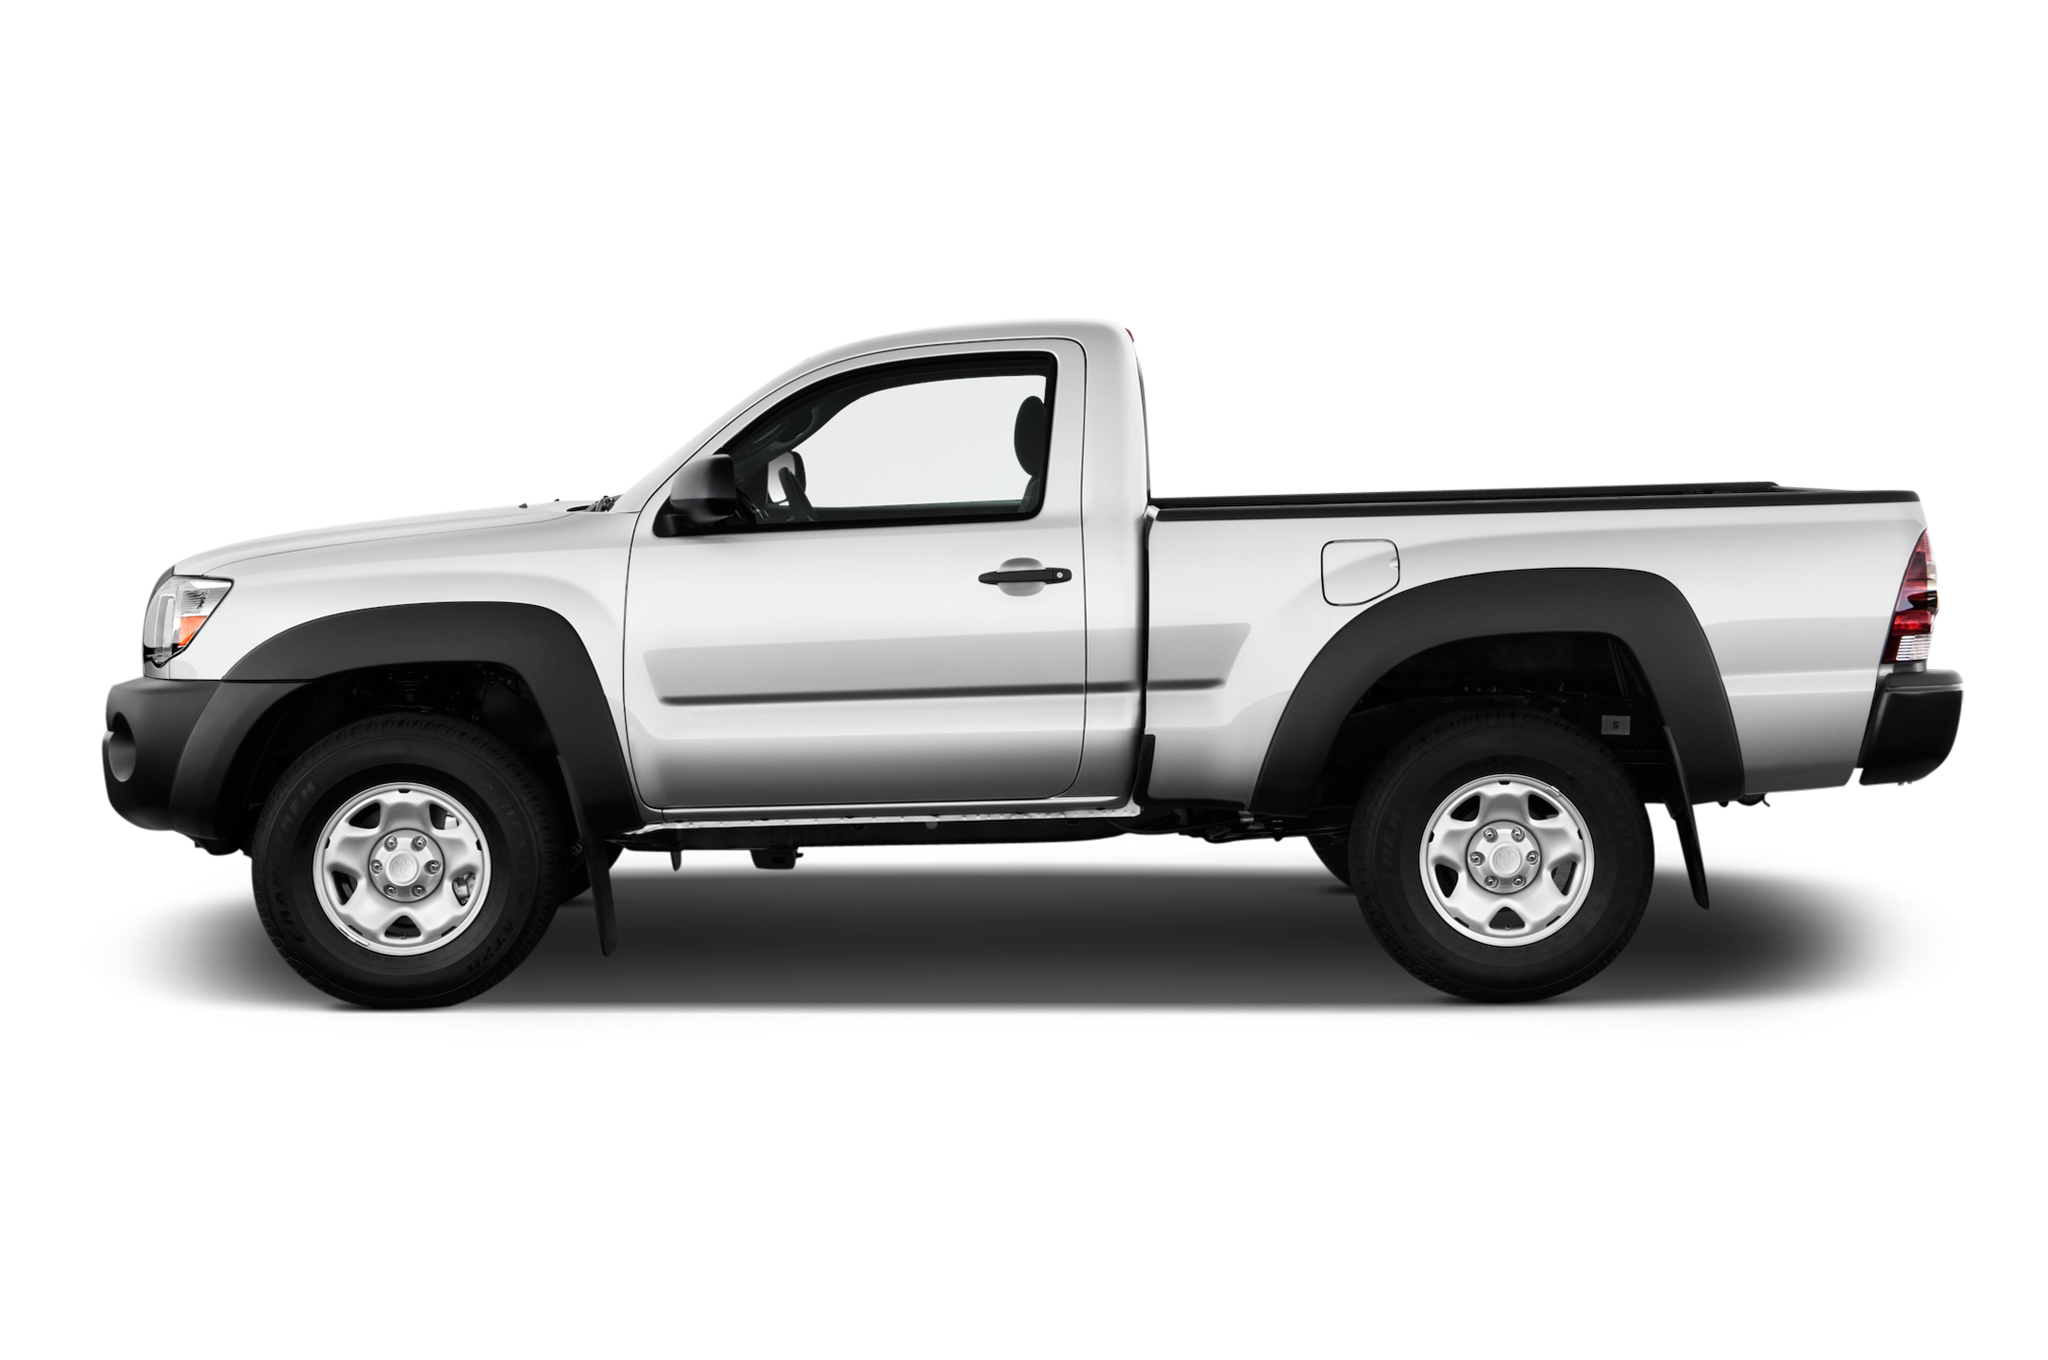 2011 toyota tacoma double cab editors 39 notebook automobile magazine. Black Bedroom Furniture Sets. Home Design Ideas